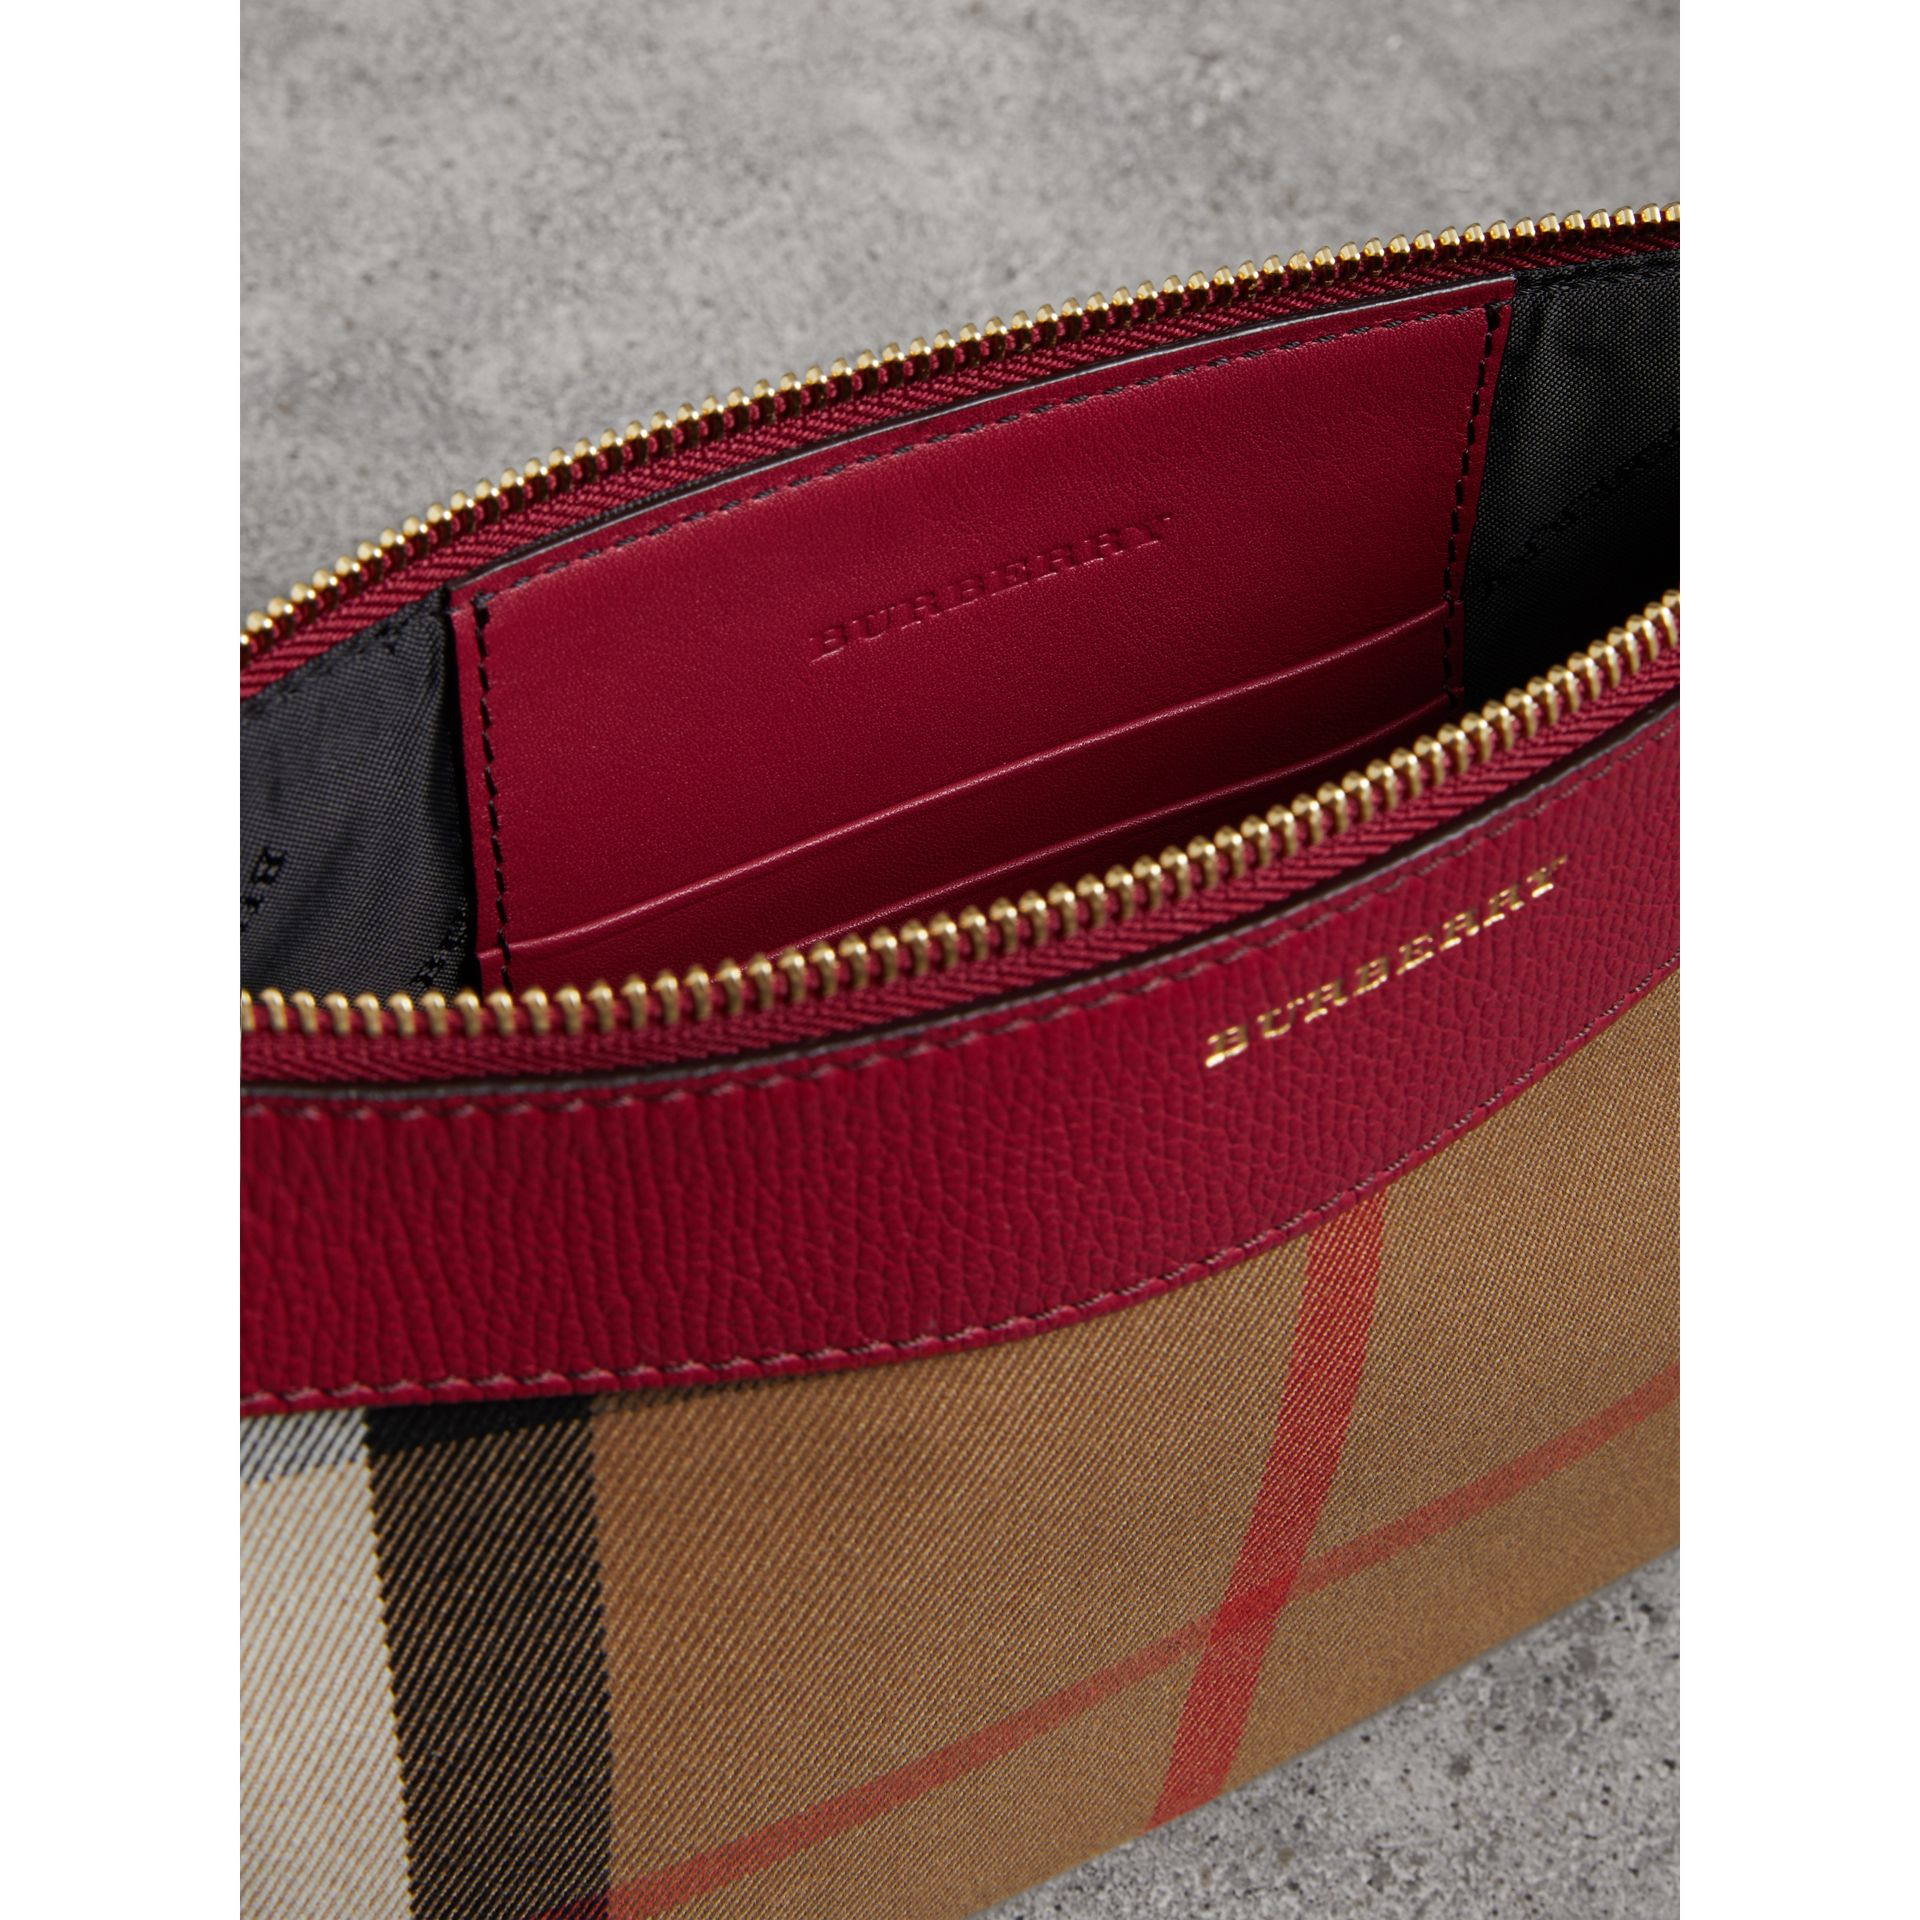 House Check and Leather Clutch Bag in Military Red - Women | Burberry United States - gallery image 5